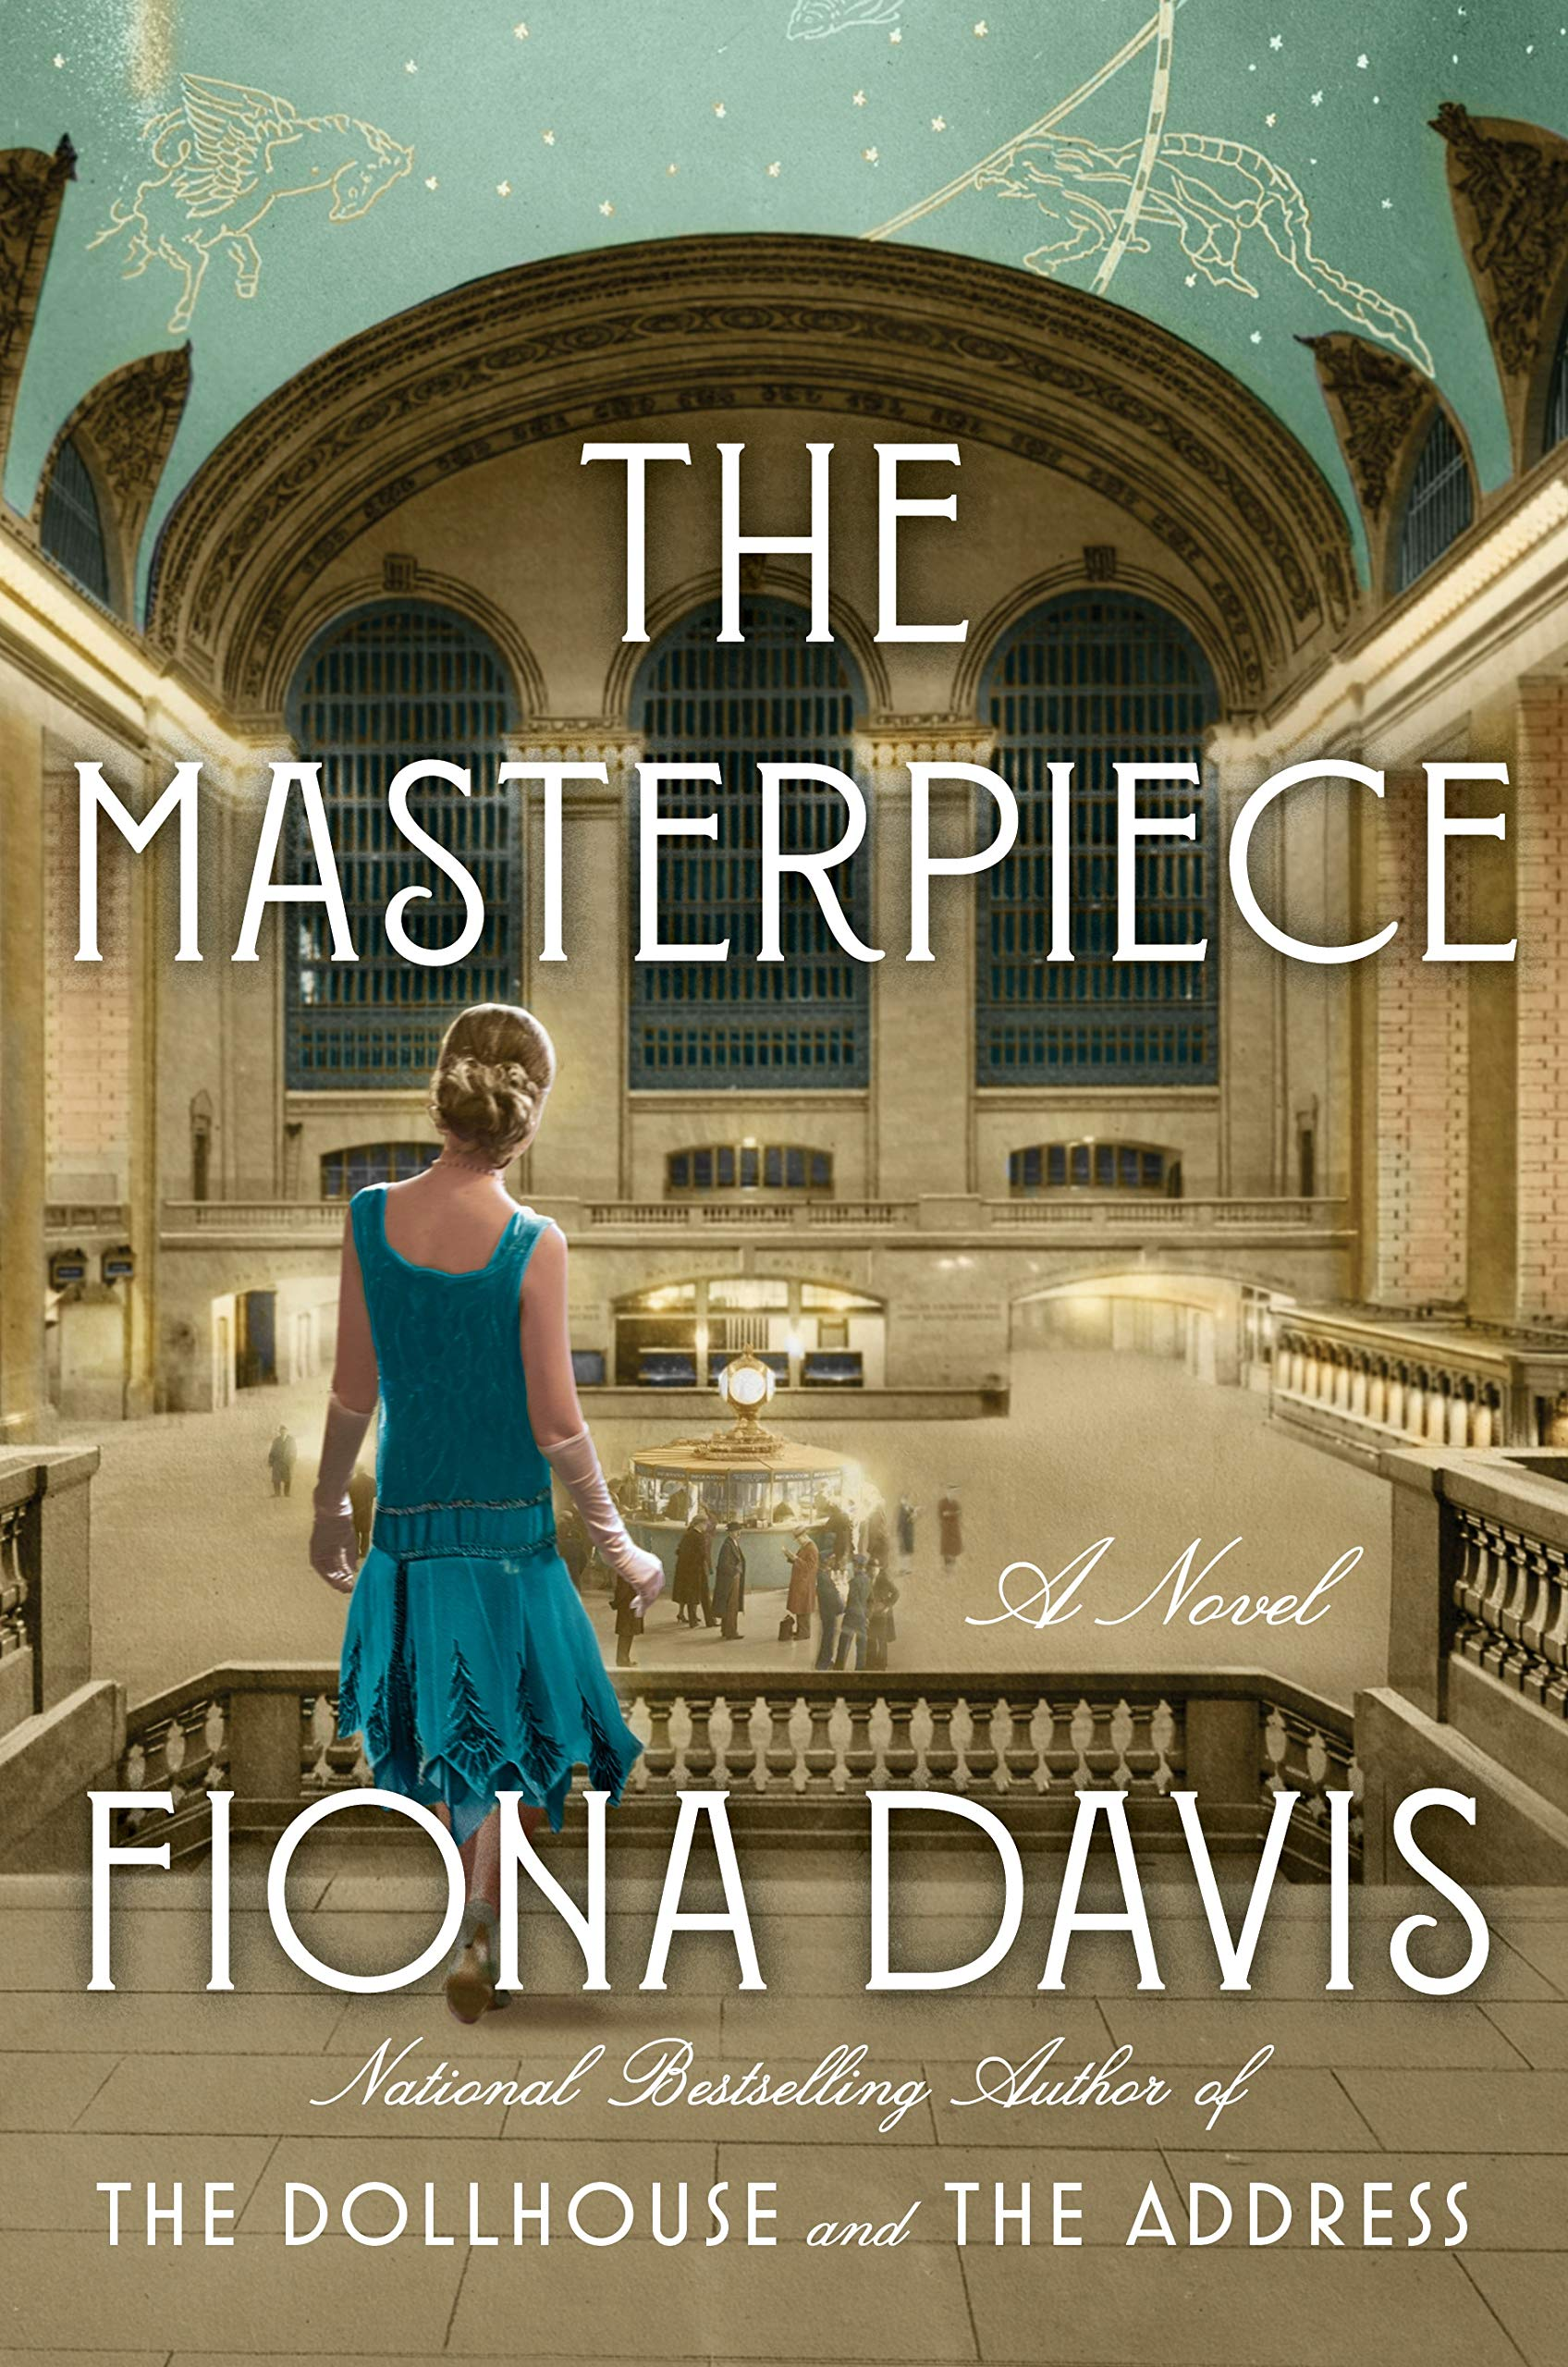 Image result for fiona davis the masterpiece